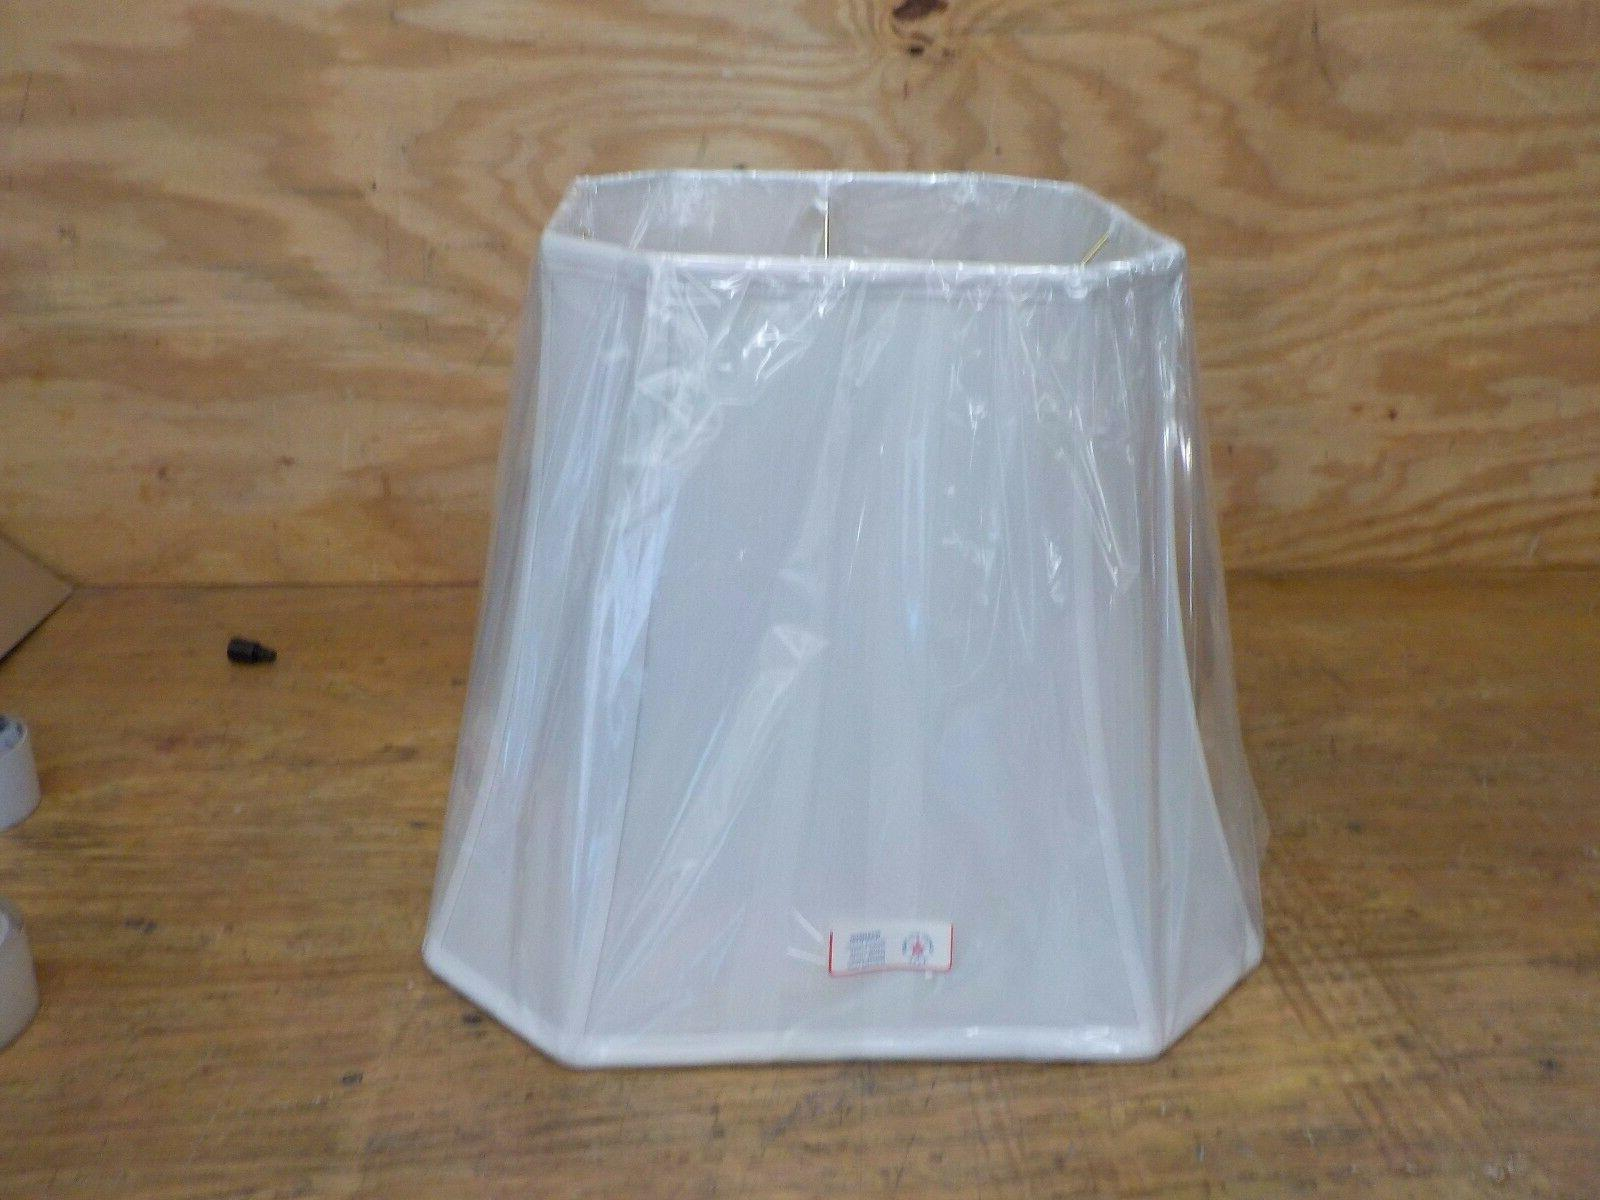 American Pride Lampshade Co. 19-78095018A Lampshade,